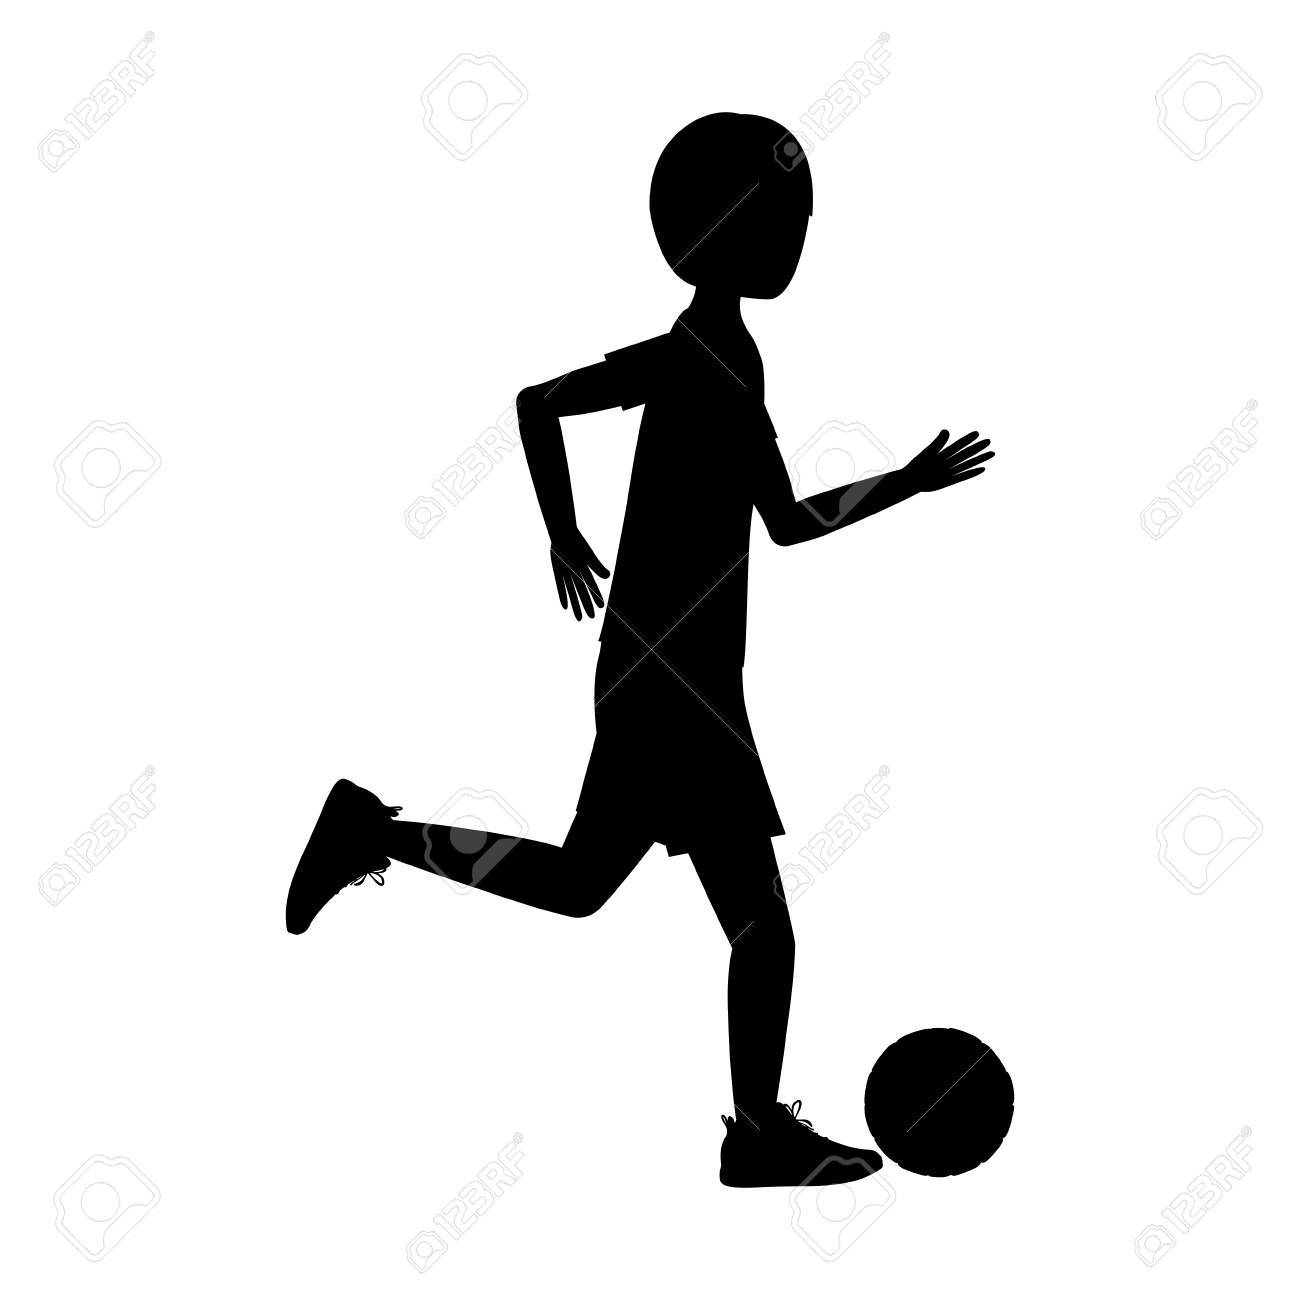 Image result for football training